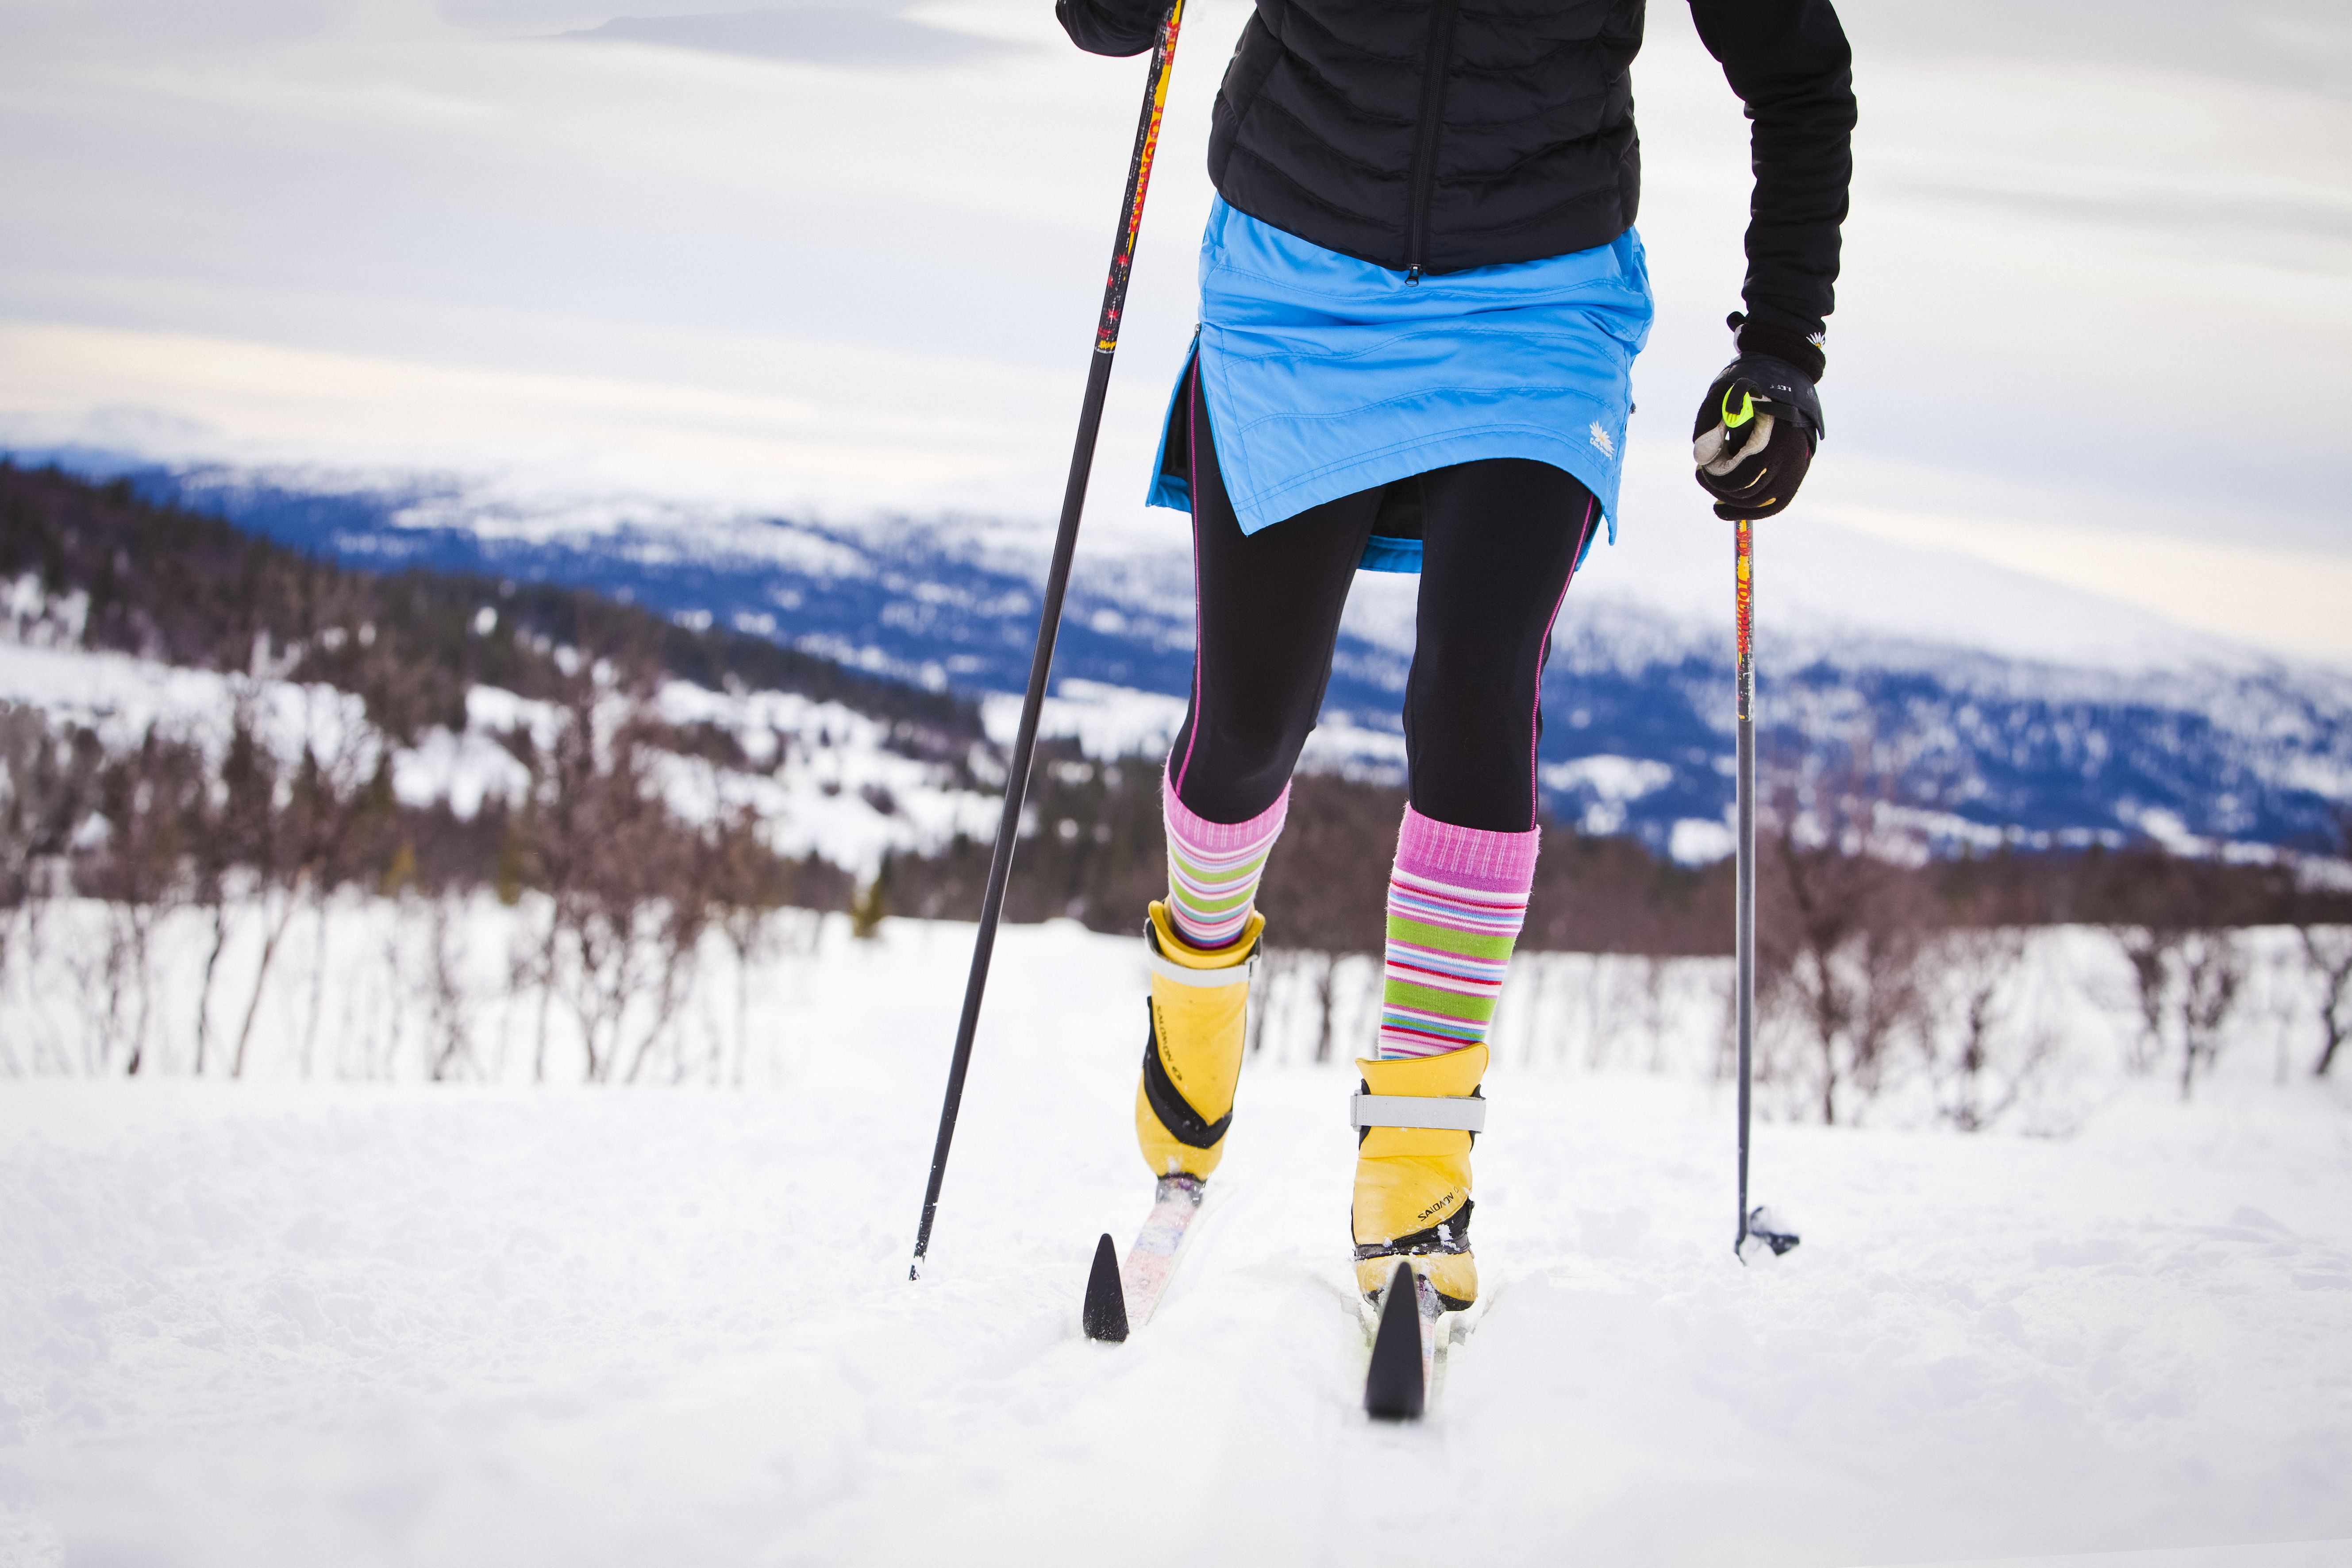 Insulated Ski Running Anytime Skirts By Skhoop Www Skhoop Us Skiing Outfit Cross Country Skiing Outfit Sports Skirts